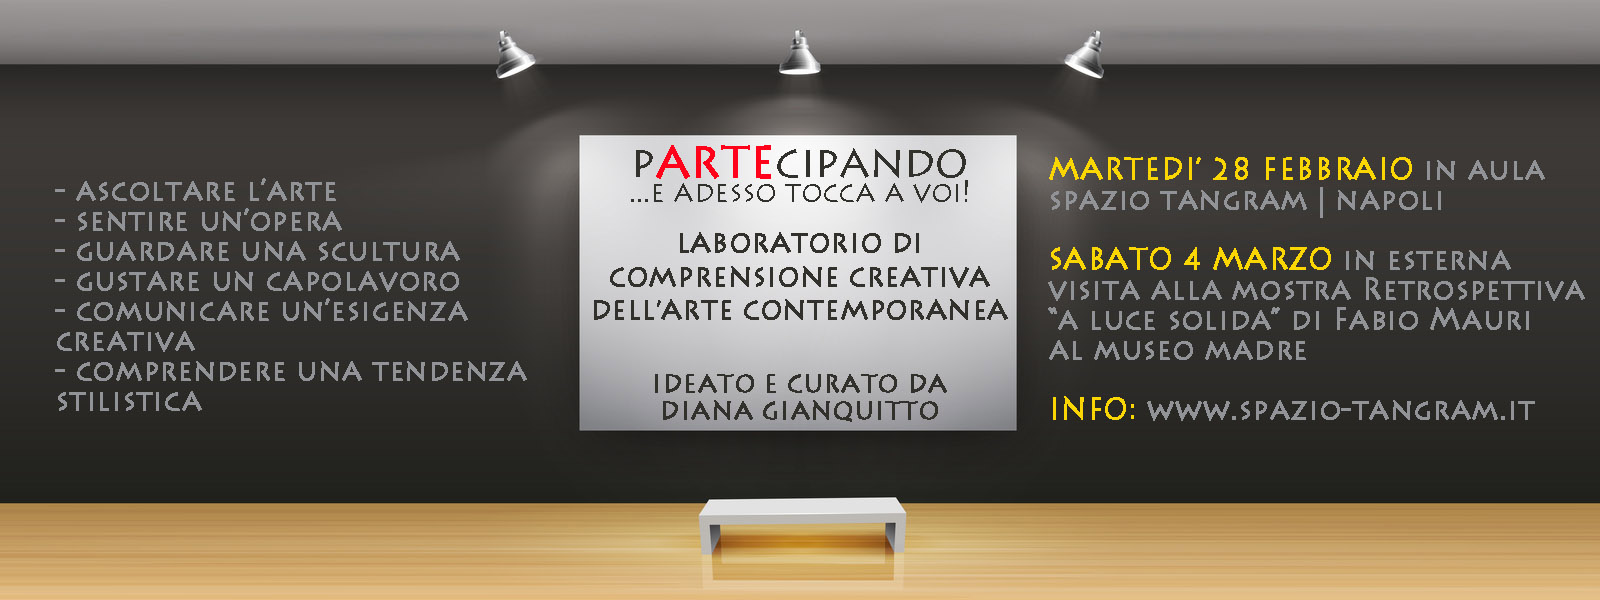 laboratorio di comprensione creativa dell'arte contemporanea